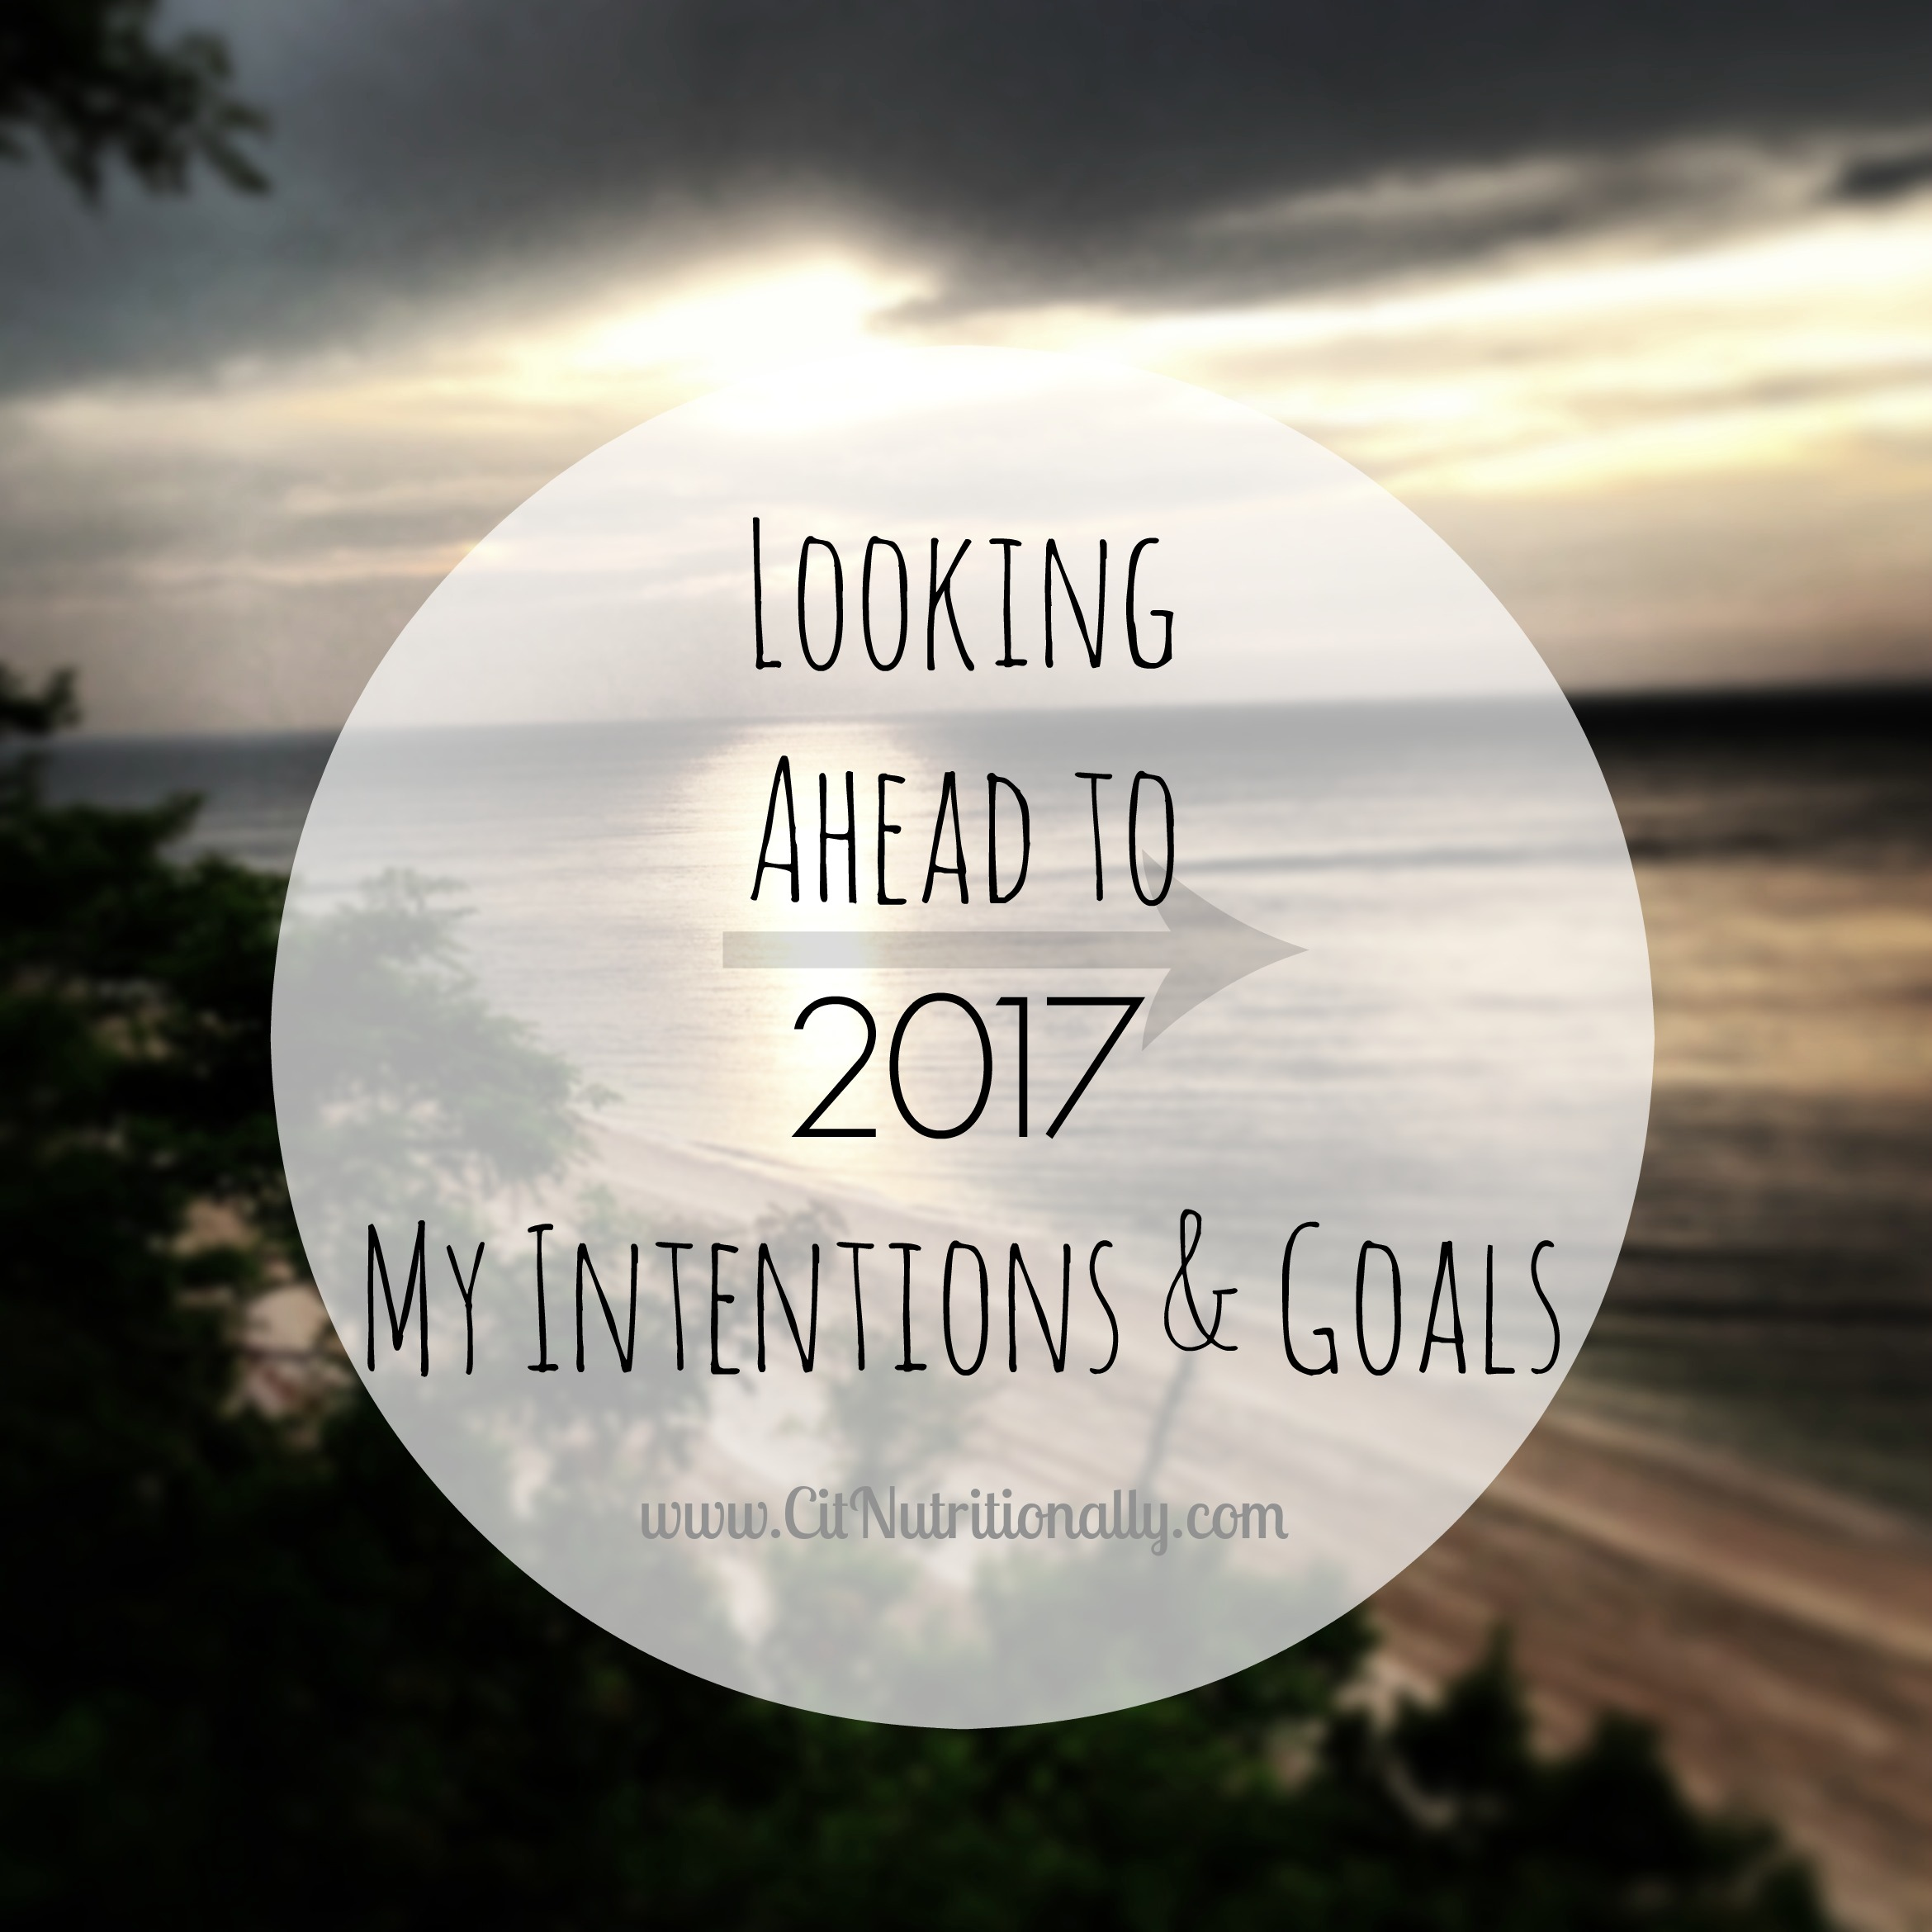 Looking Ahead to 2017: My Intentions and Goals | C it Nutritionally